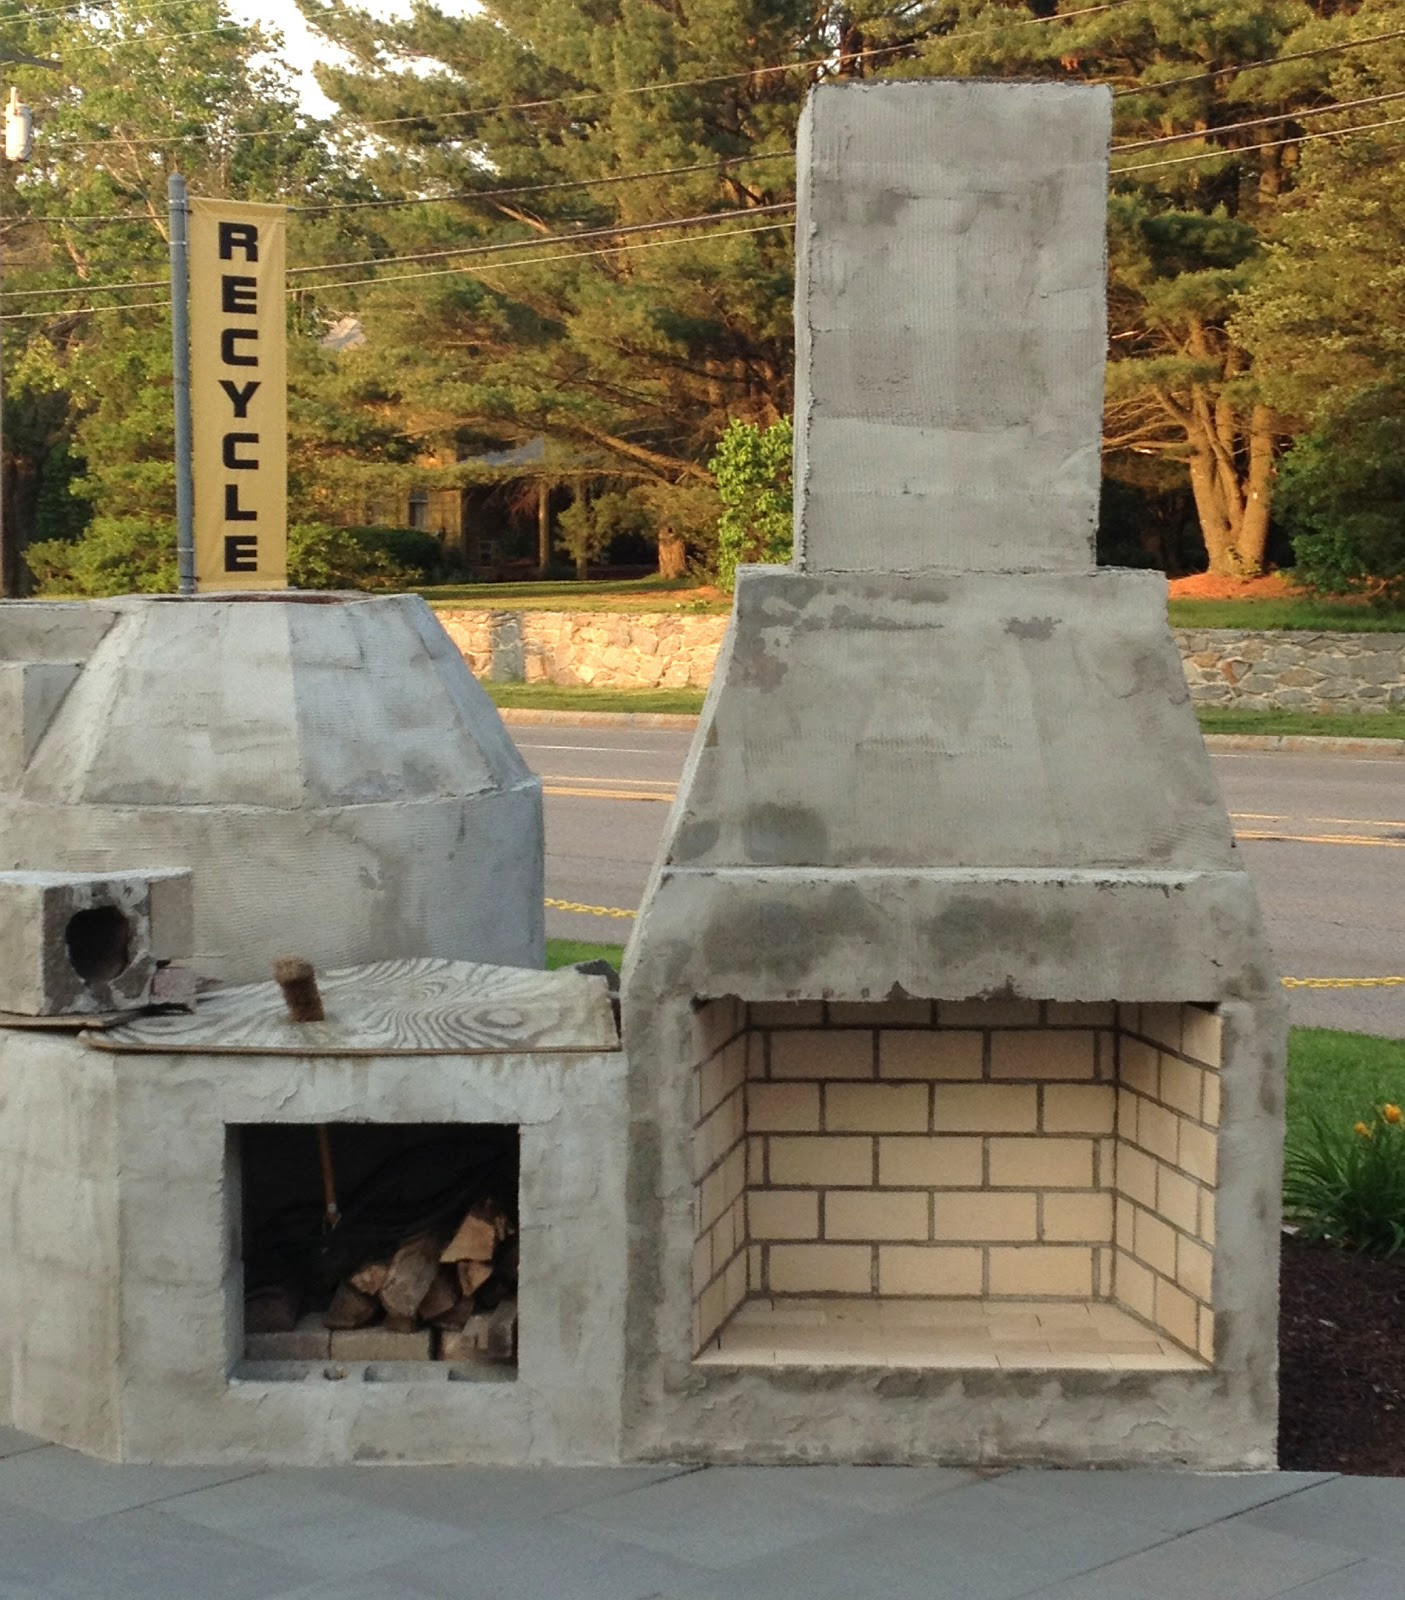 Best ideas about Outdoor Fireplace DIY . Save or Pin Outdoor Fireplace Kits for the DIYer Shine Your Light Now.